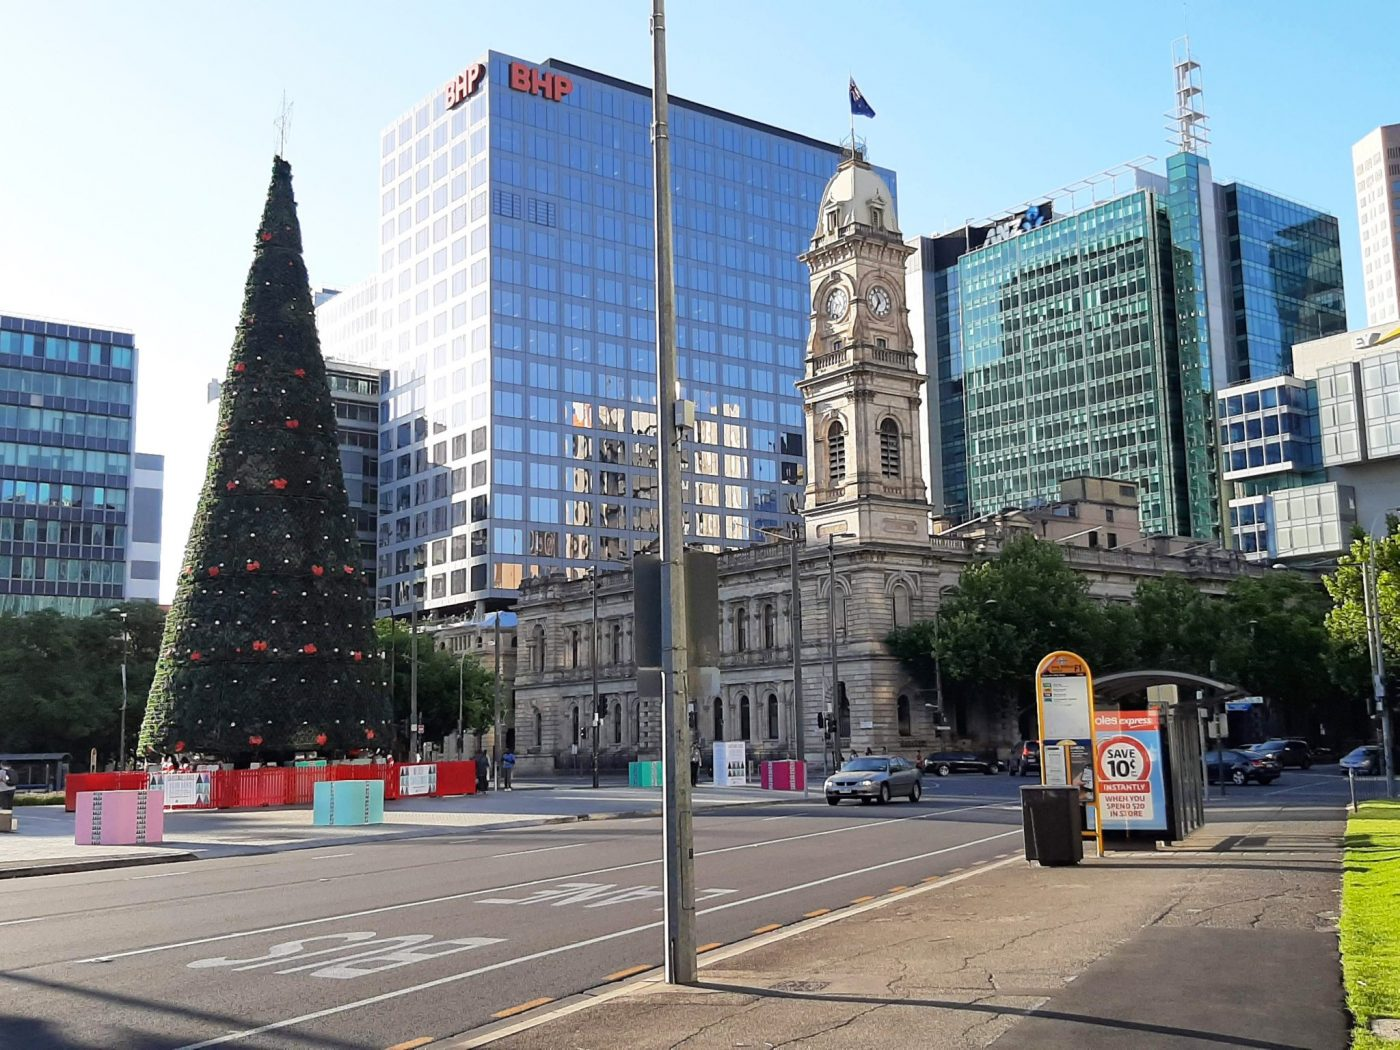 Christmas tree in Adelaide